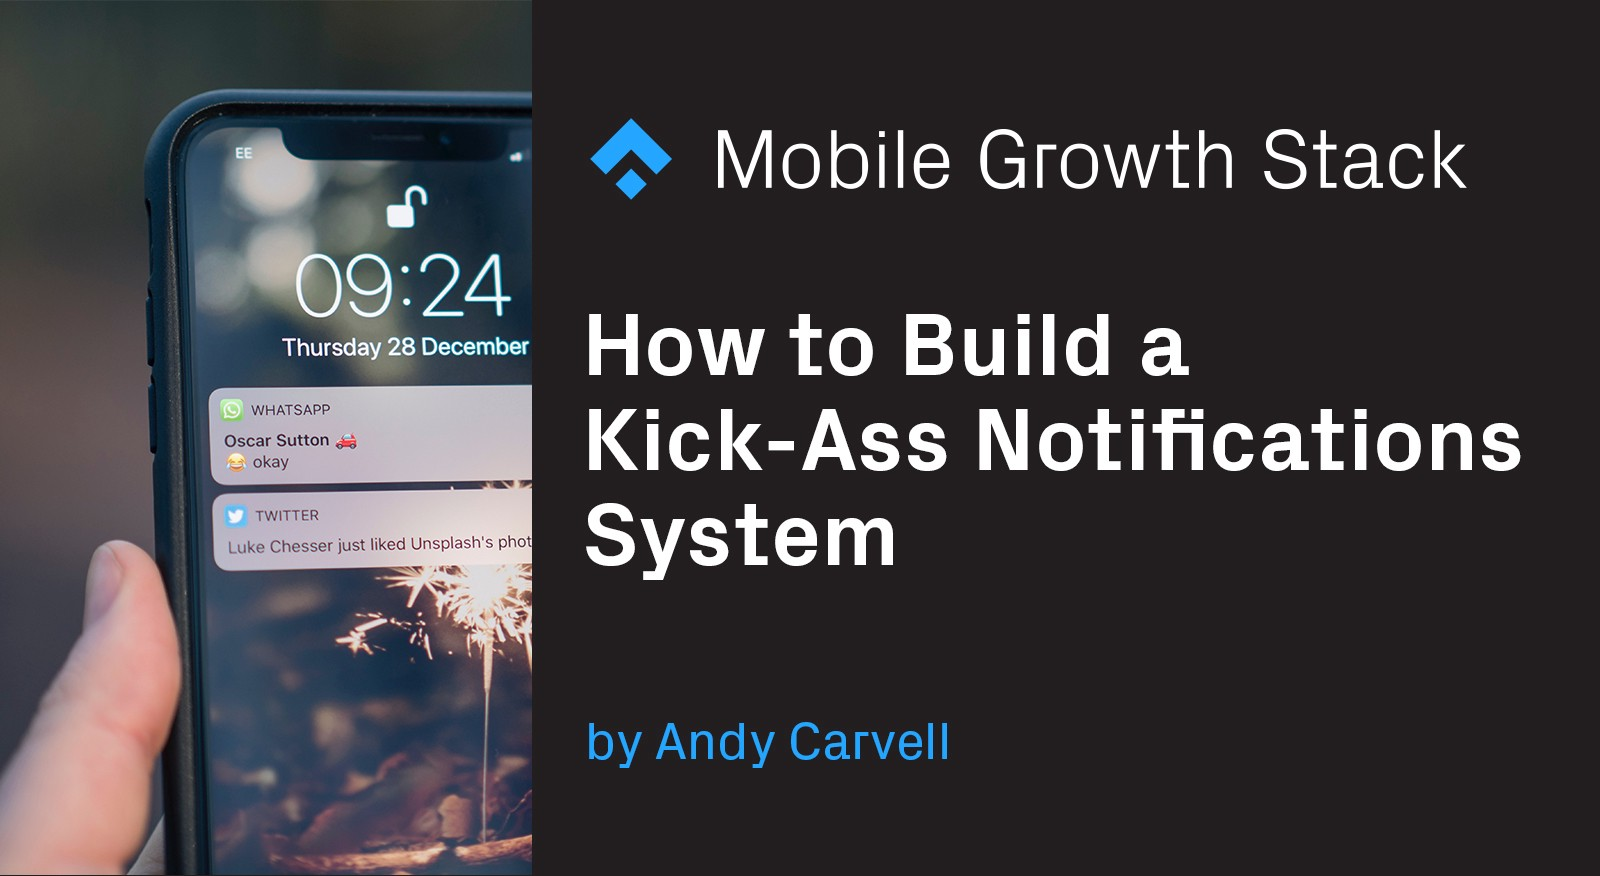 How to Build a Kick-Ass Notifications System - The Mobile Growth Stack